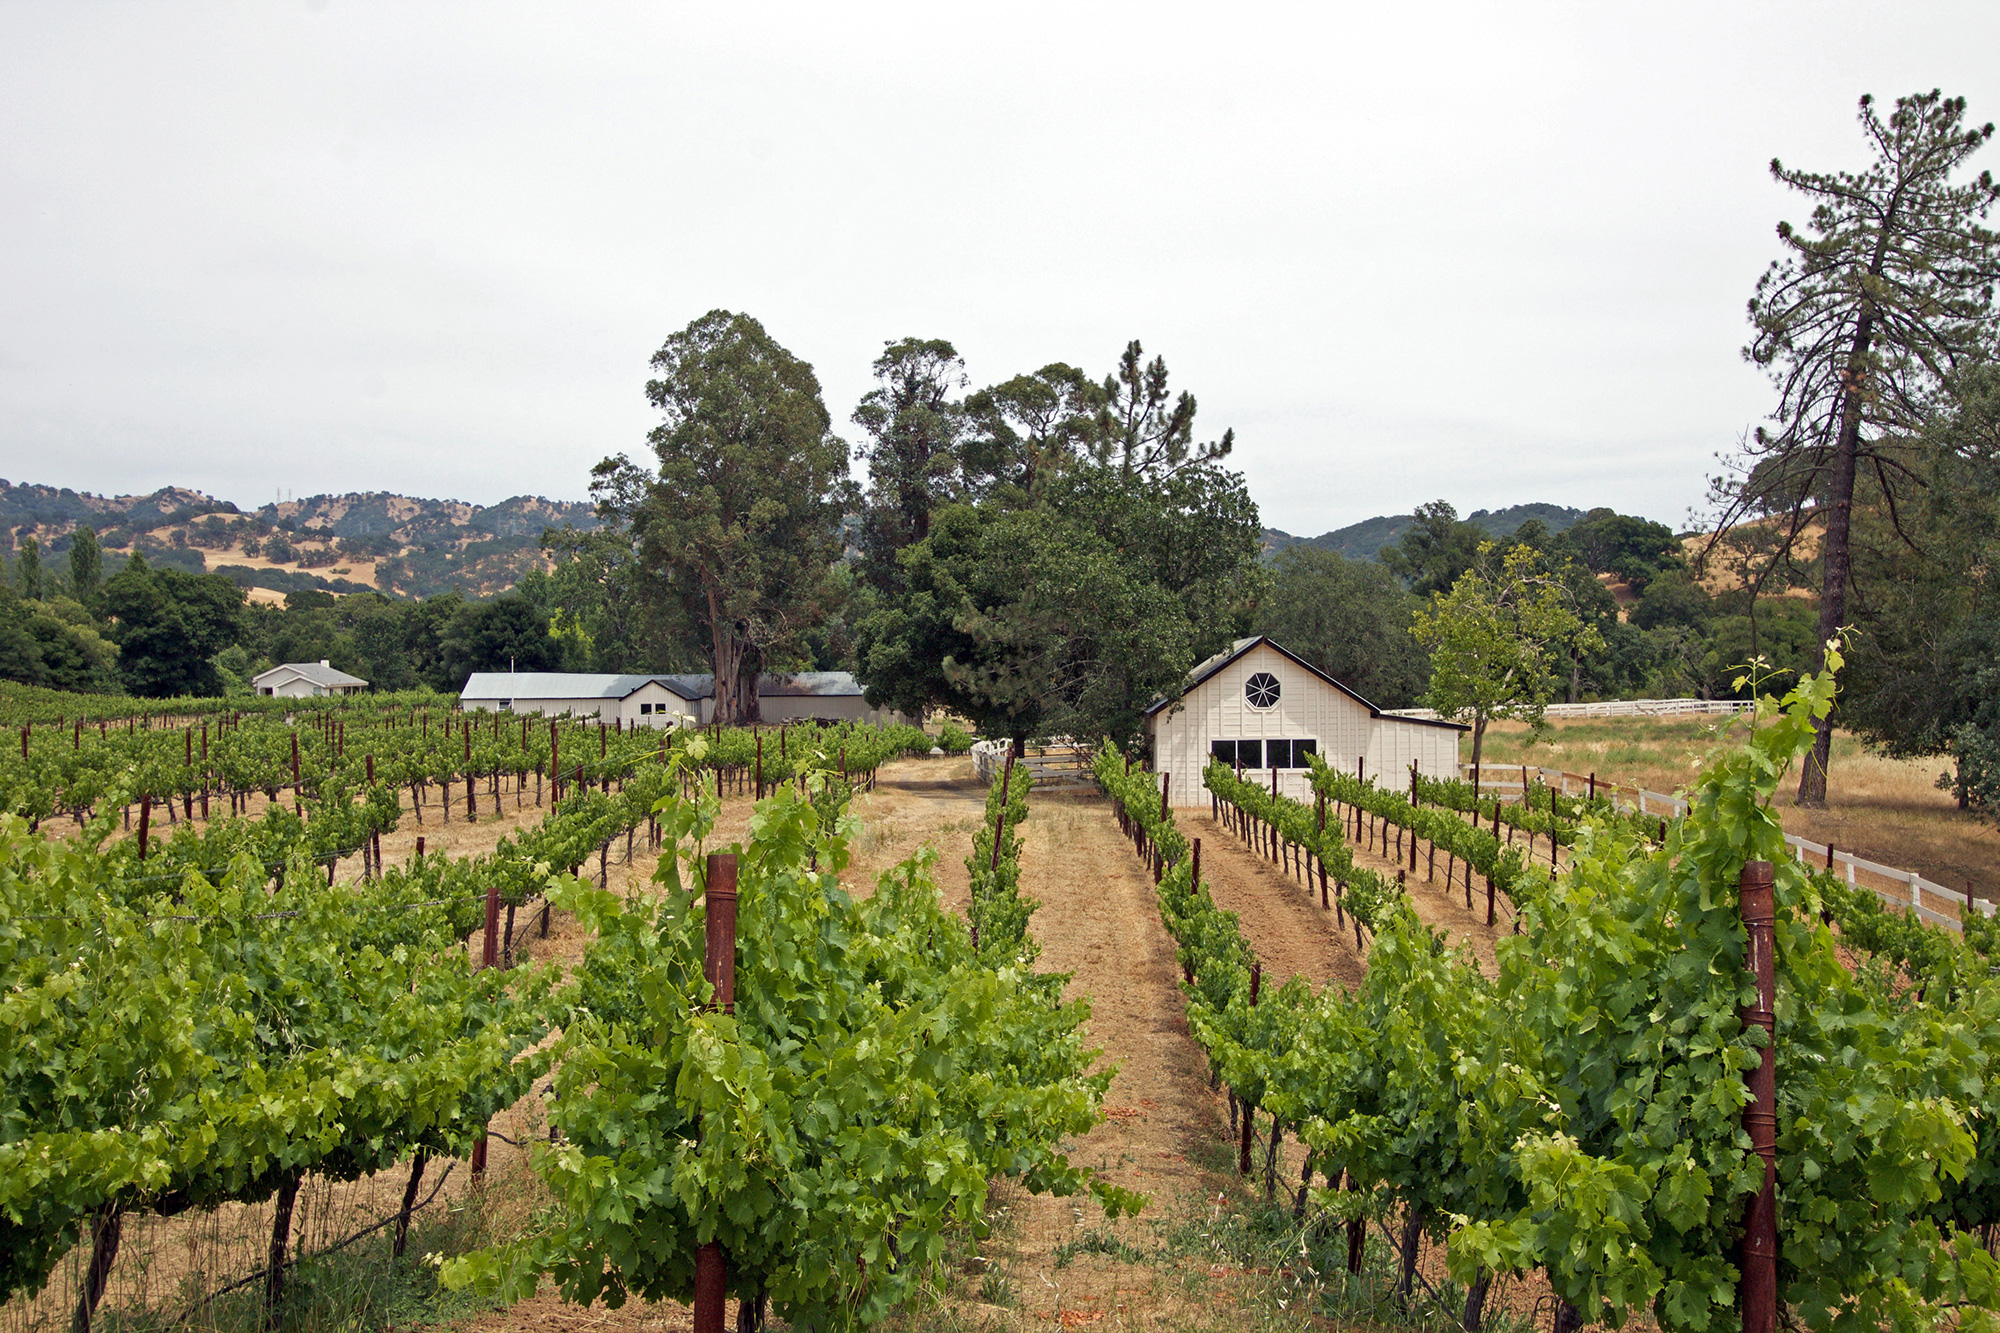 Napa Prestige - Vineyard Estate